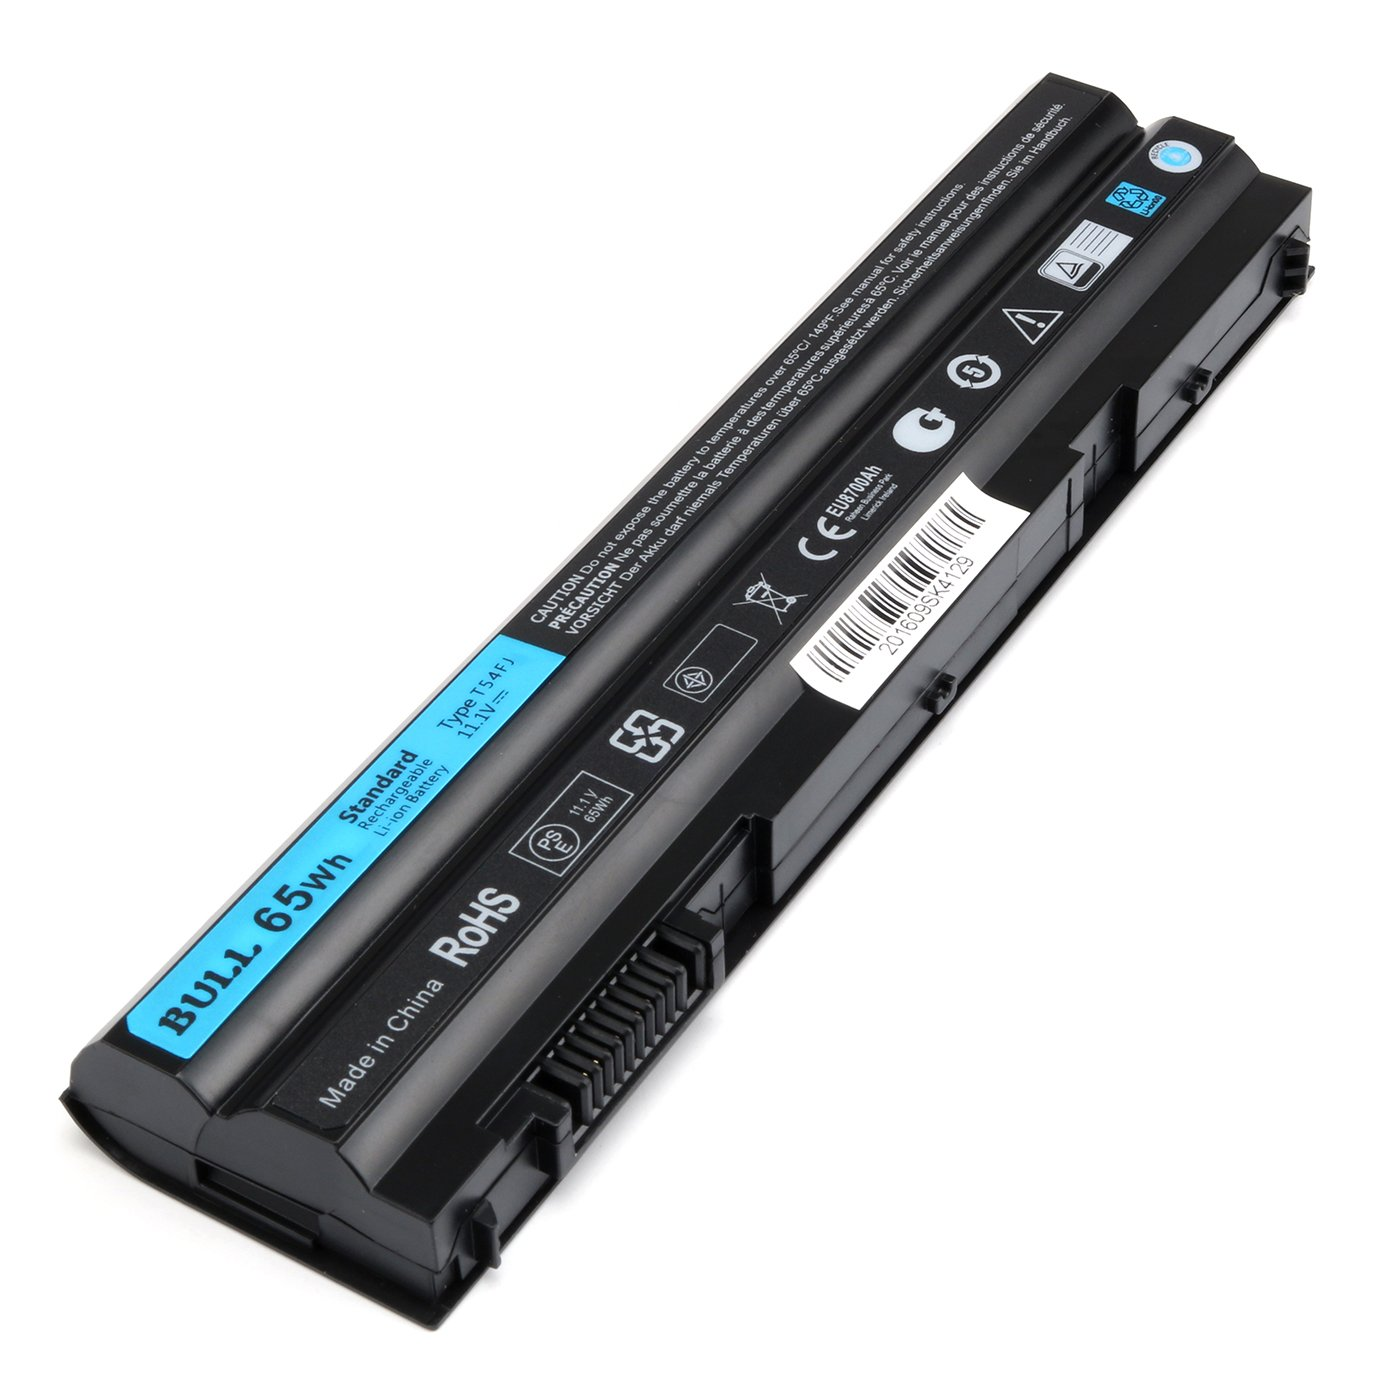 BULL-TECH 11.1V T54FJ New Laptop Battery for Dell Latitude E5420 E5520 E6420 E6520 Compatible P/N: M5Y0X 312-1163 HCJWT 7FJ92 by BULL-TECH (Image #3)